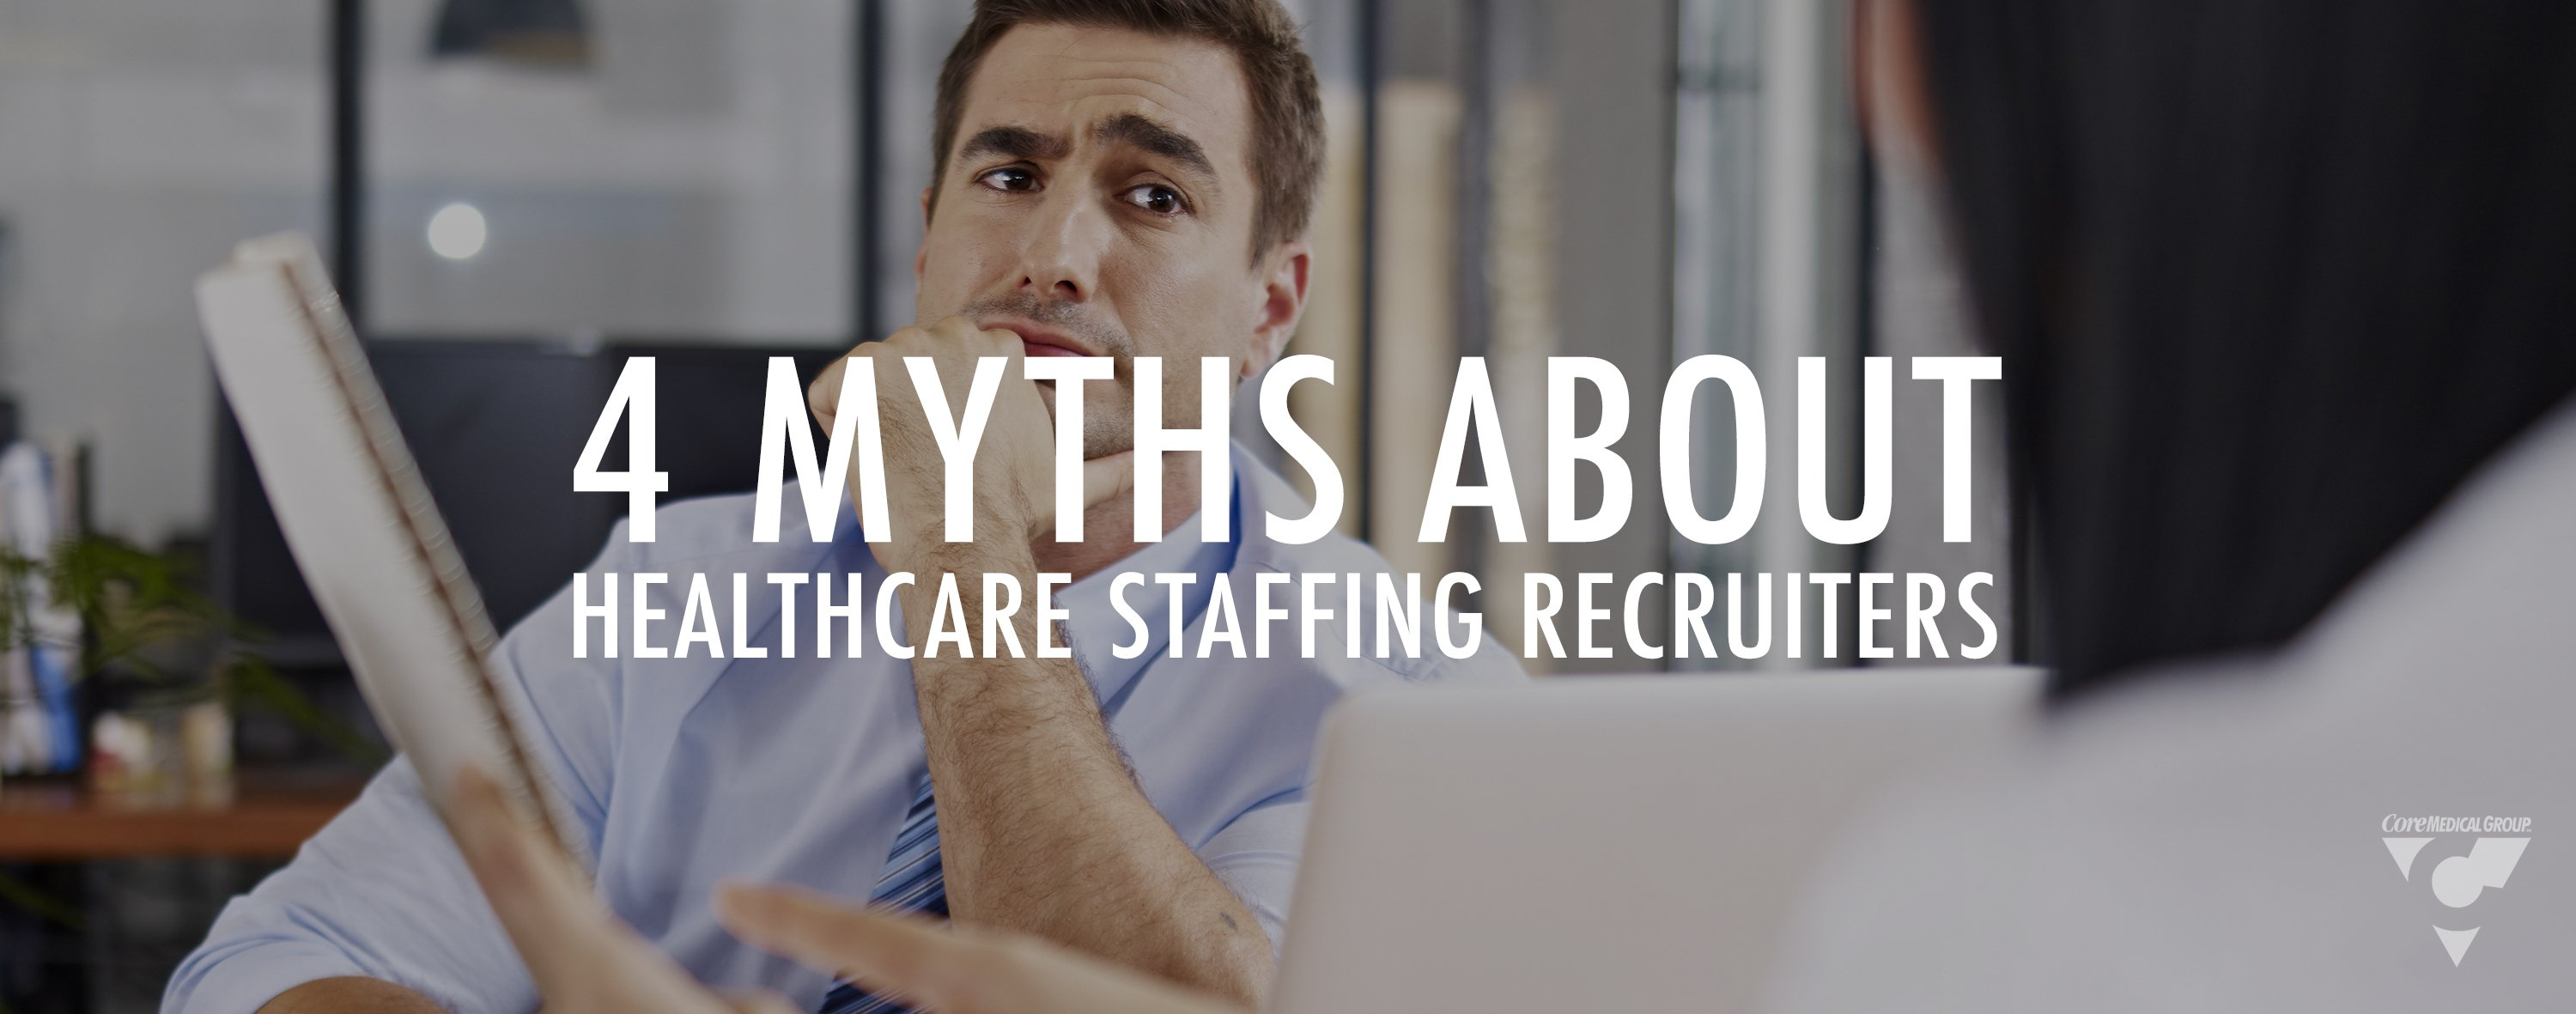 Core Medical Group Healthcare Recruiter Jobs Four Myths about Being a Healthcare Recruiter